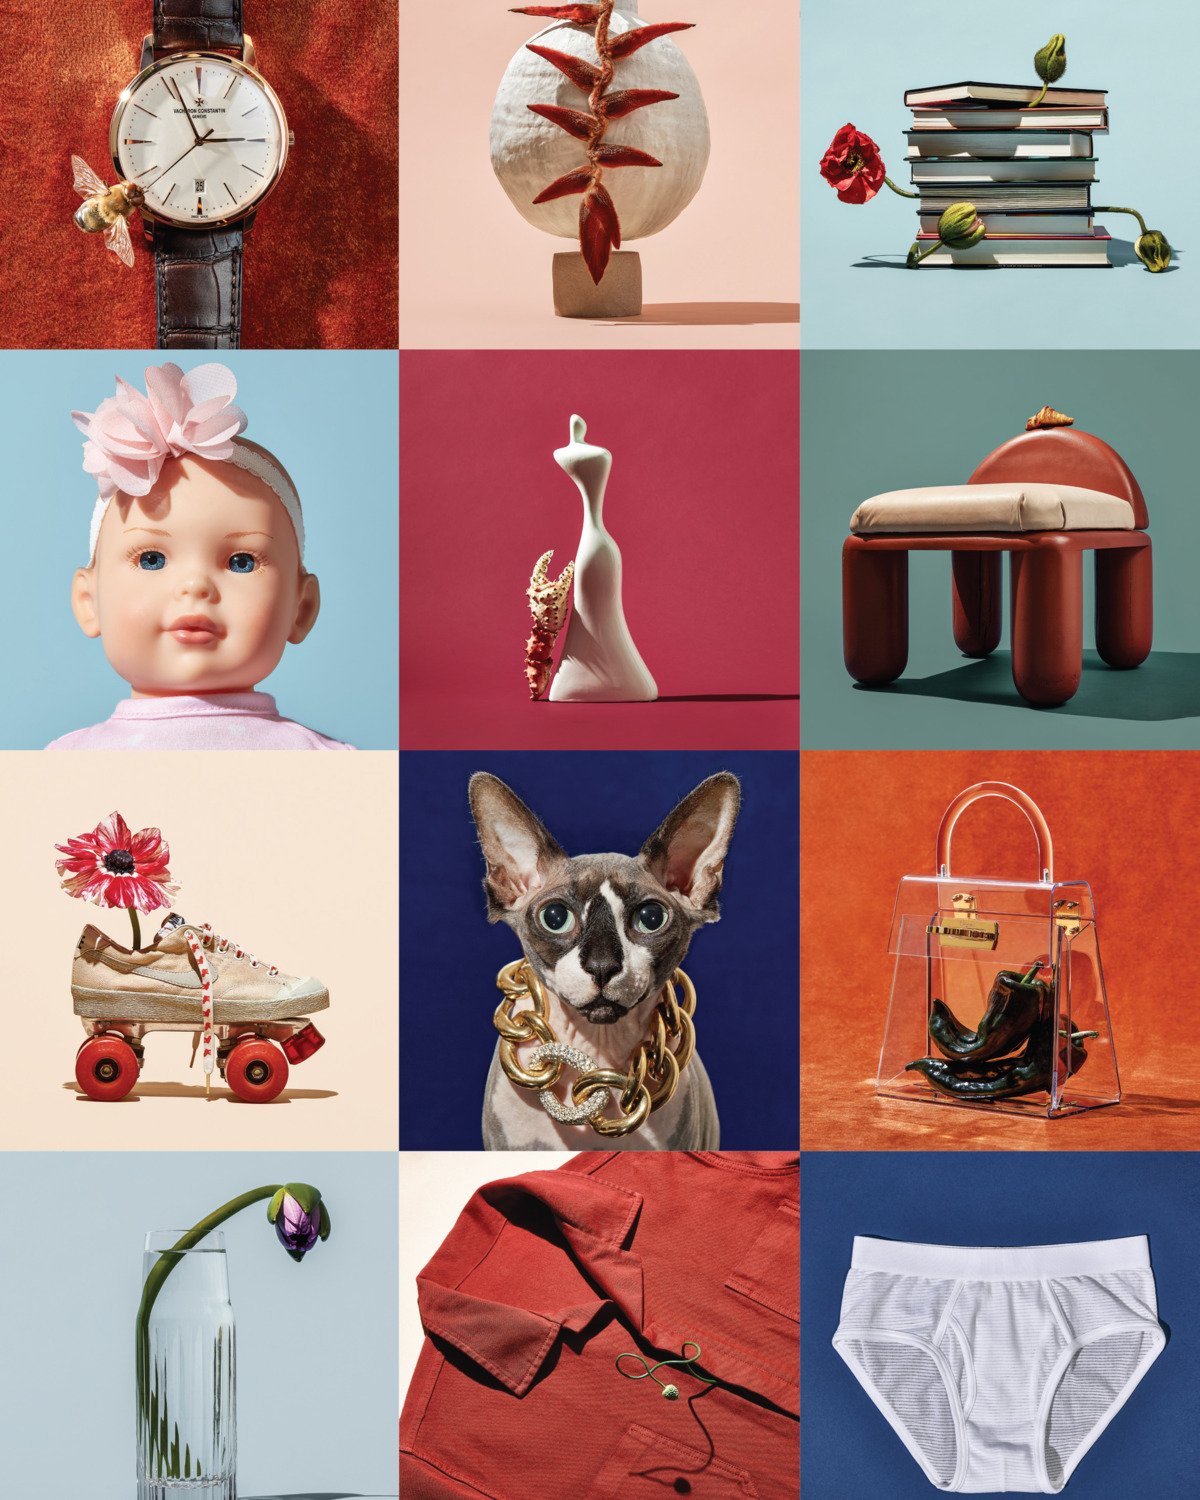 fd5db566e The Best of New York Shopping 2019